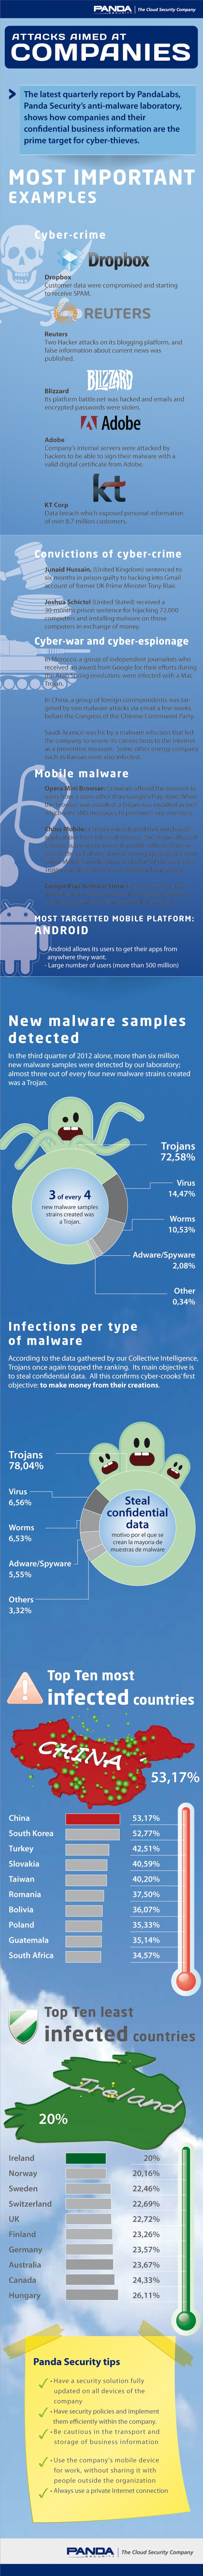 Do you want to know a little bit more about attacks aimed at companies? Panda has created this infographic about it.